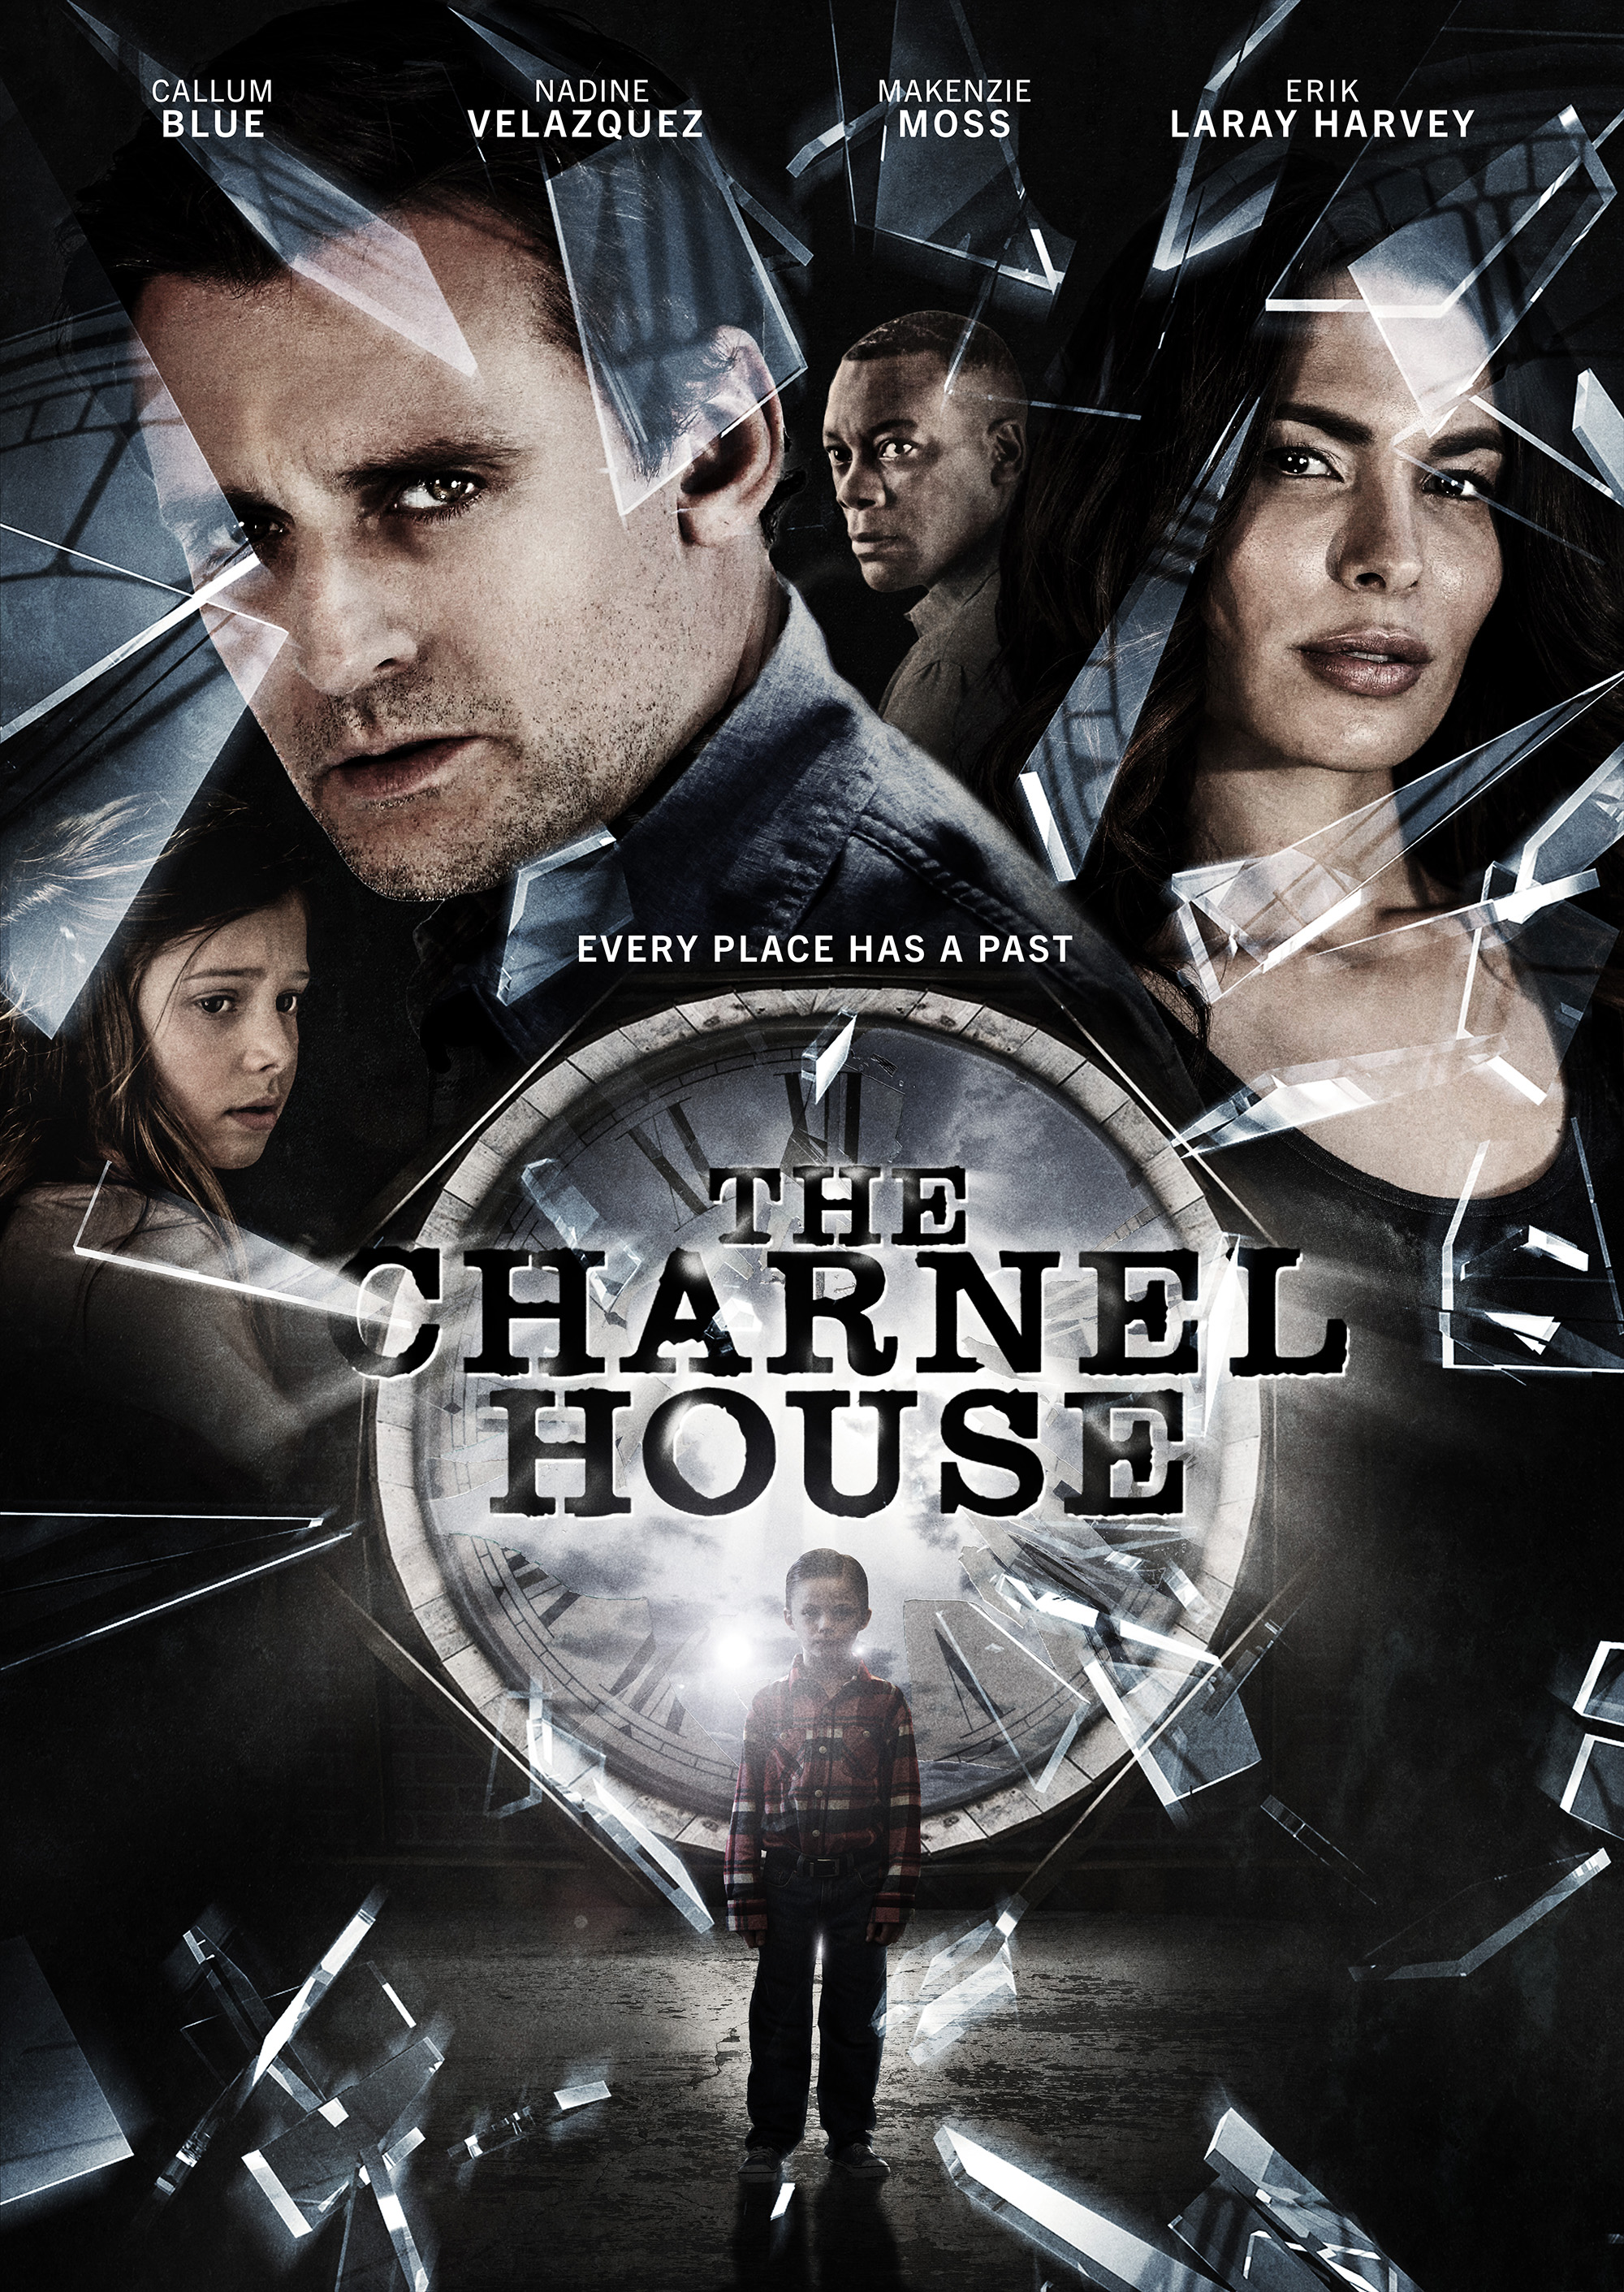 Callum Blue, Erik LaRay Harvey, Nadine Velazquez, and Makenzie Moss in The Charnel House (2016)